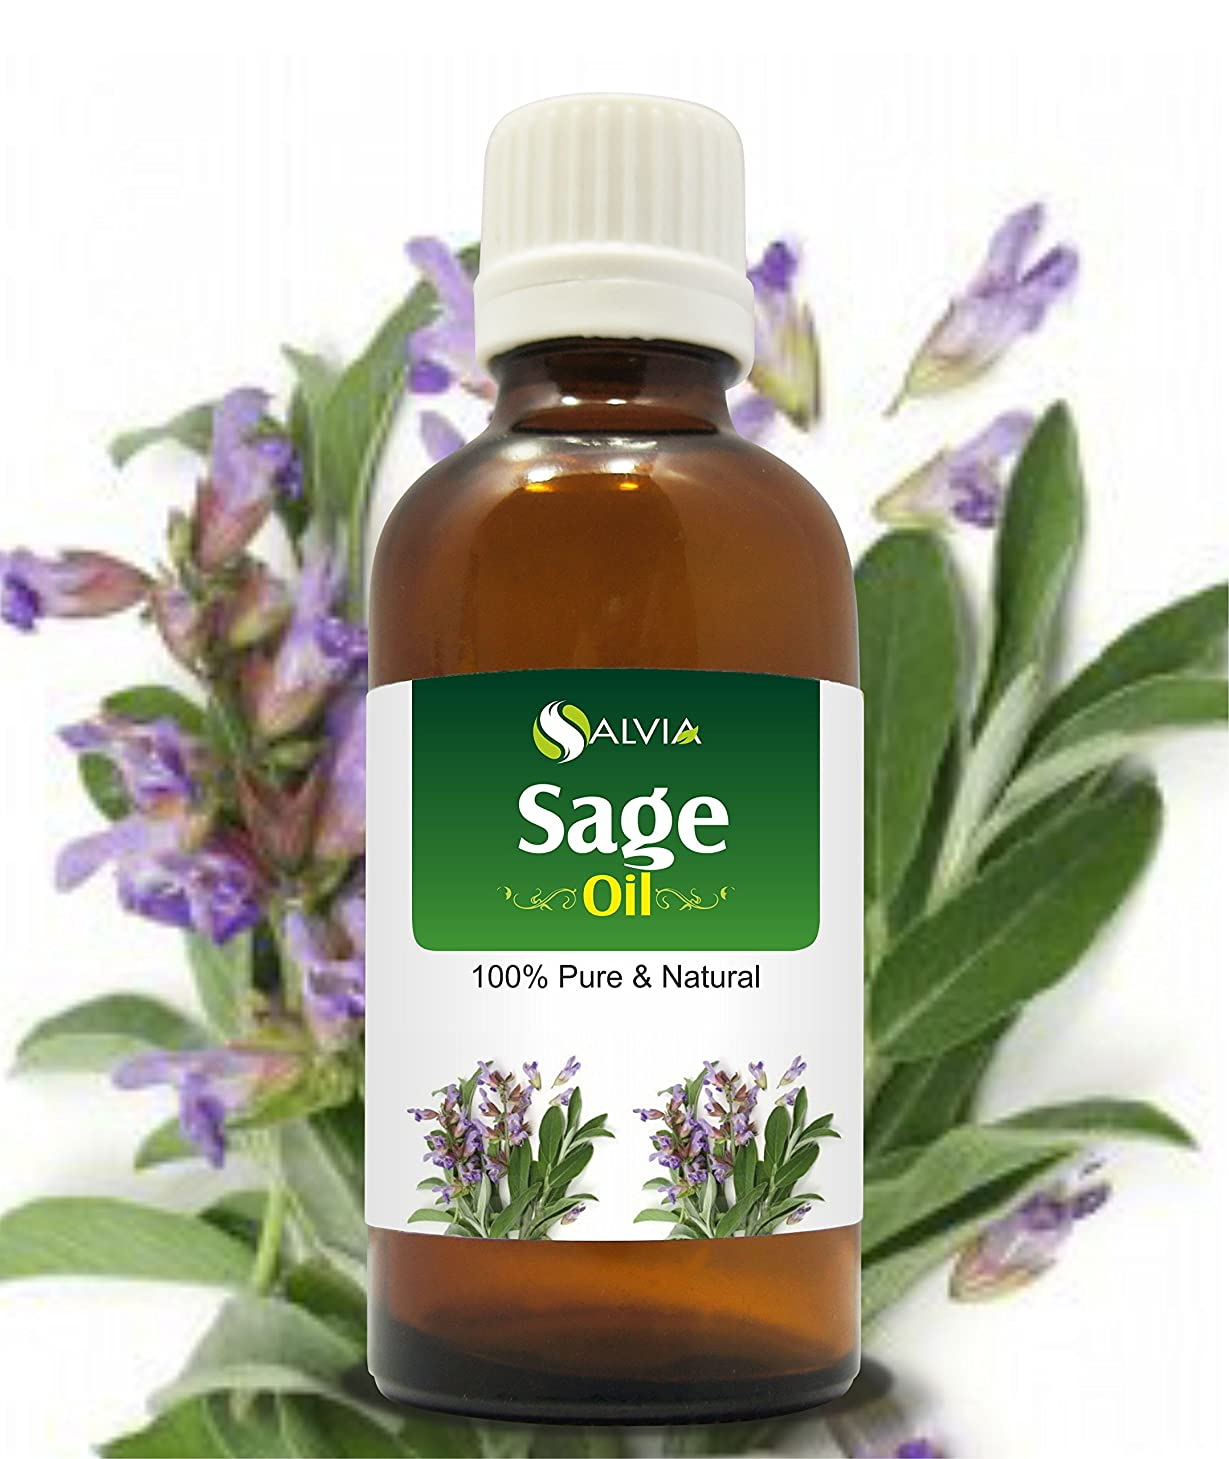 解体するオリエンテーション読者SAGE OIL 100% NATURAL PURE UNDILUTED UNCUT ESSENTIAL OIL 15ML